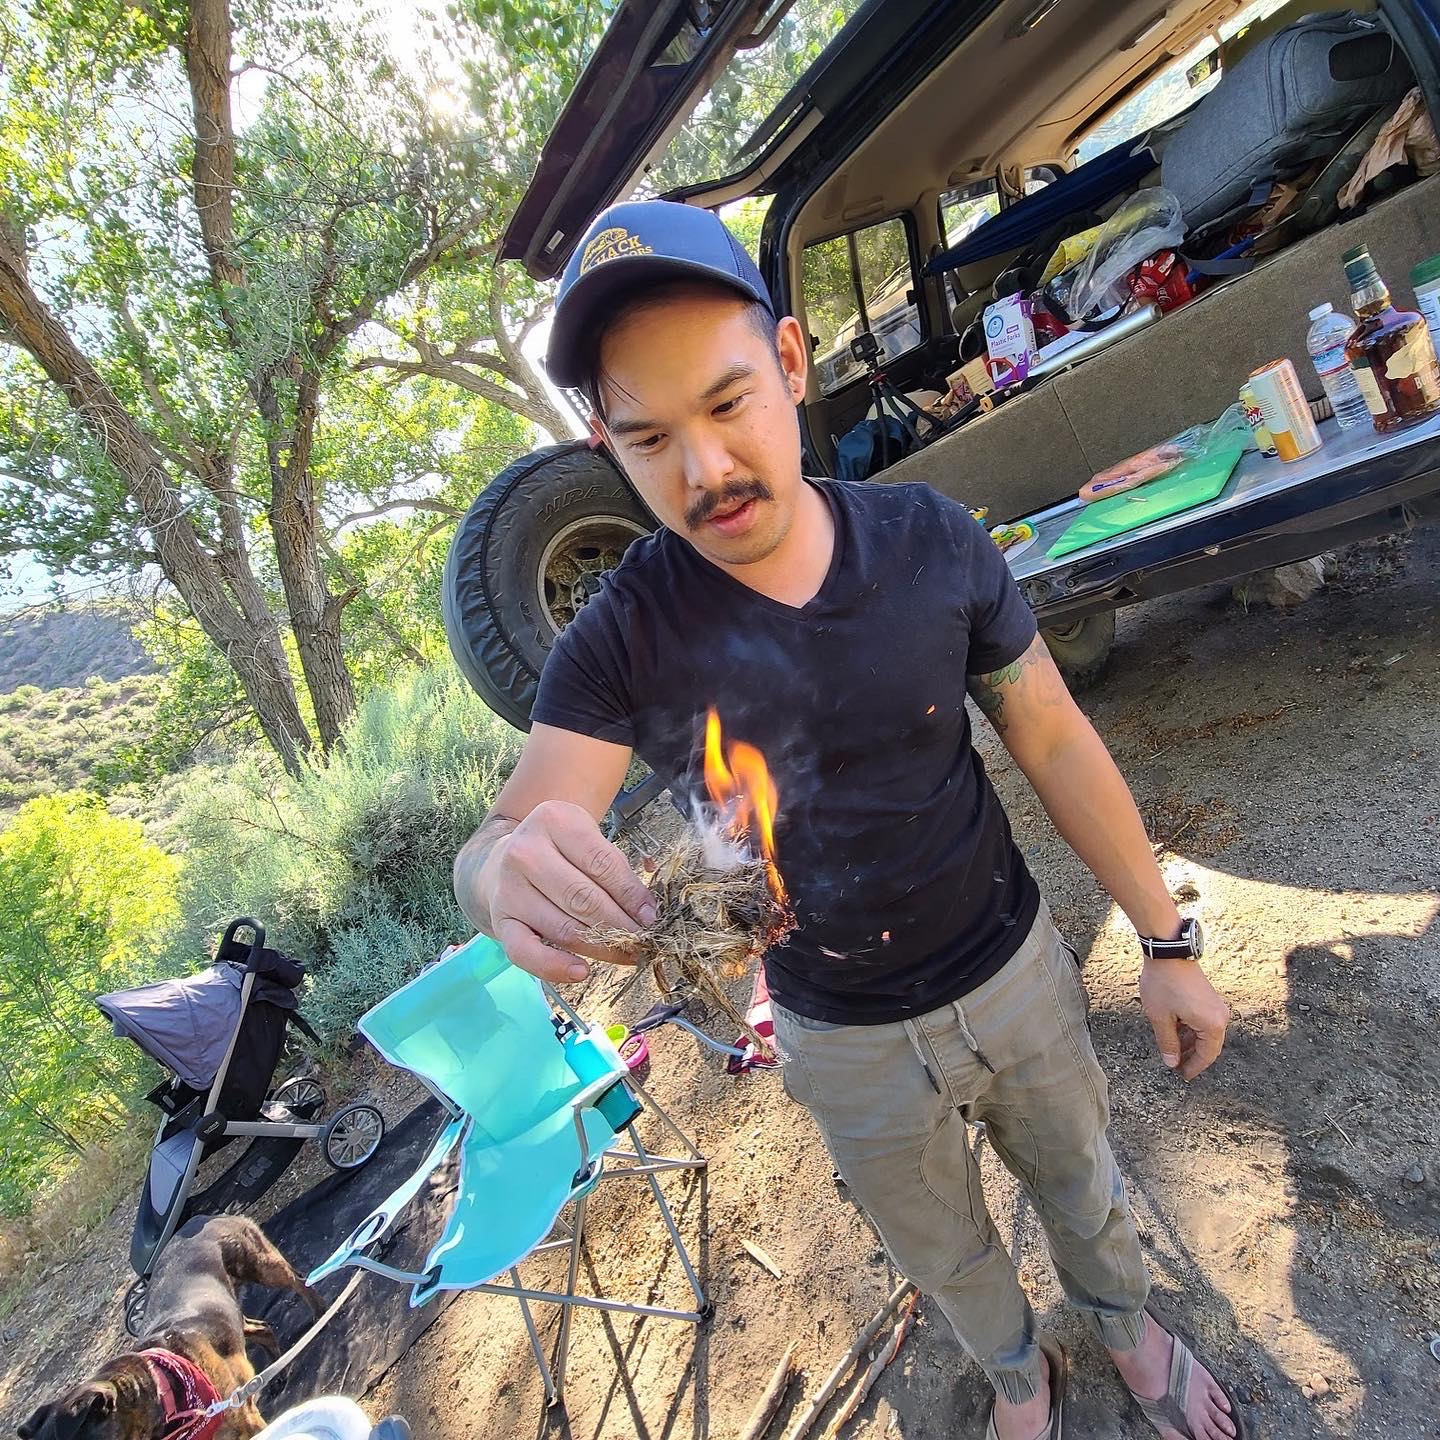 friction fire with a pocket knife bow drill